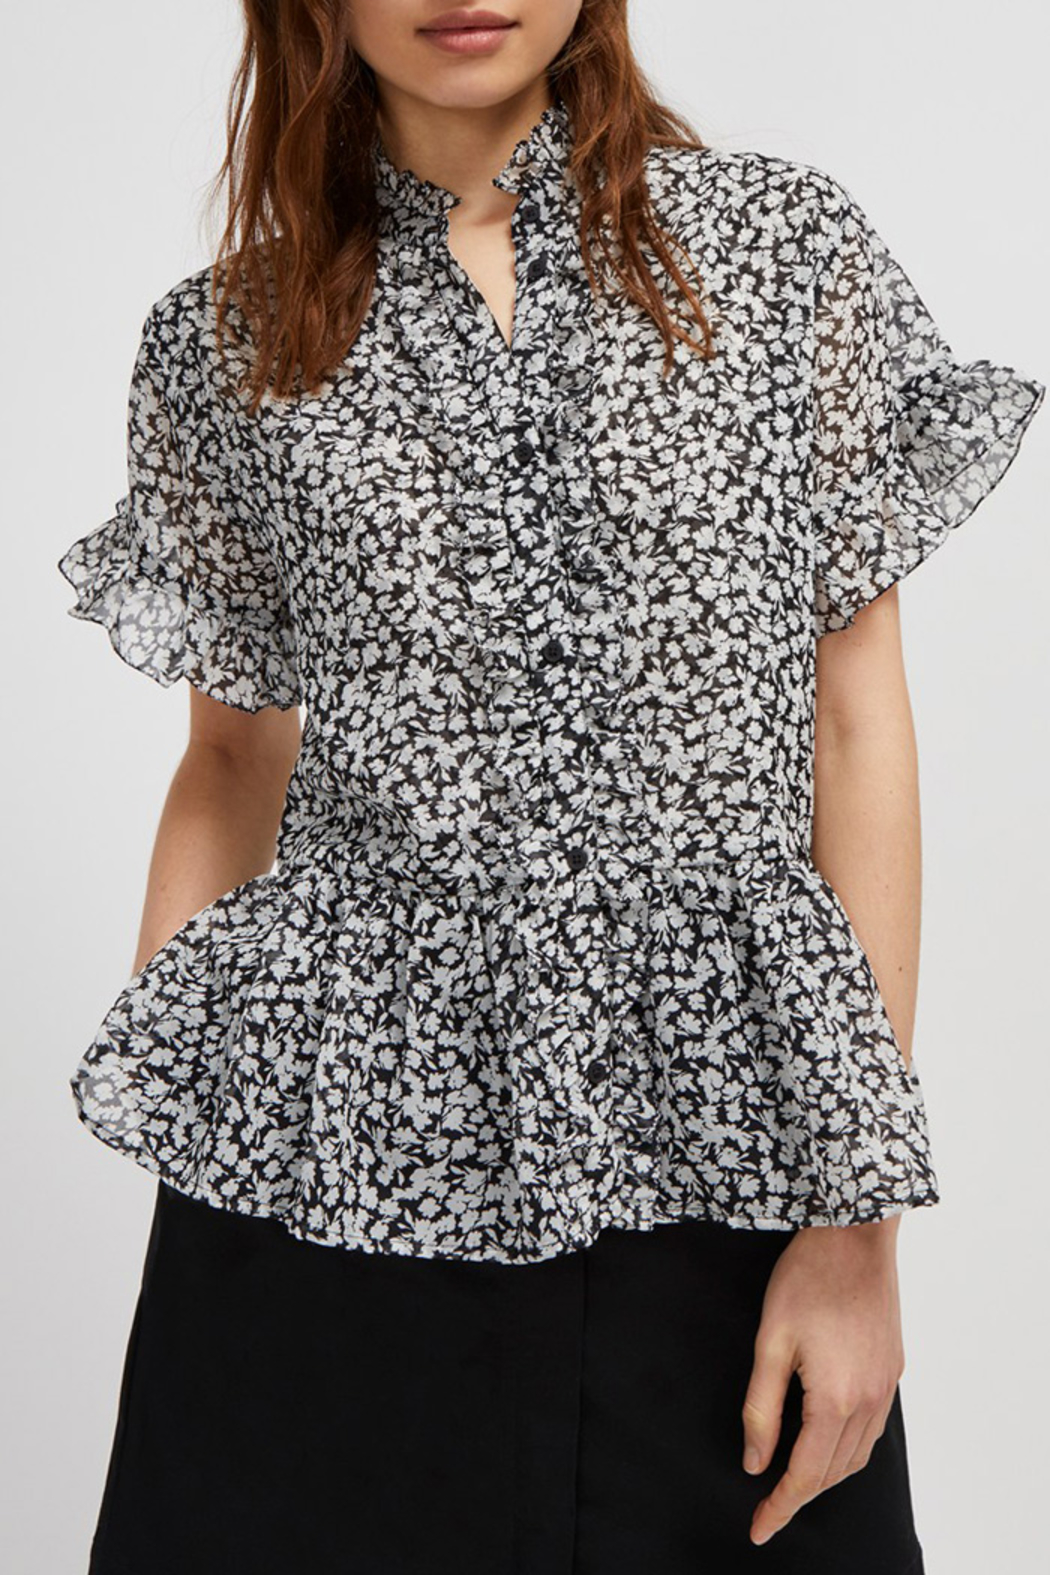 36a46130286 French Connection FLORAL RUFFLE SLEEVE BLOUSE from Kentucky by ...